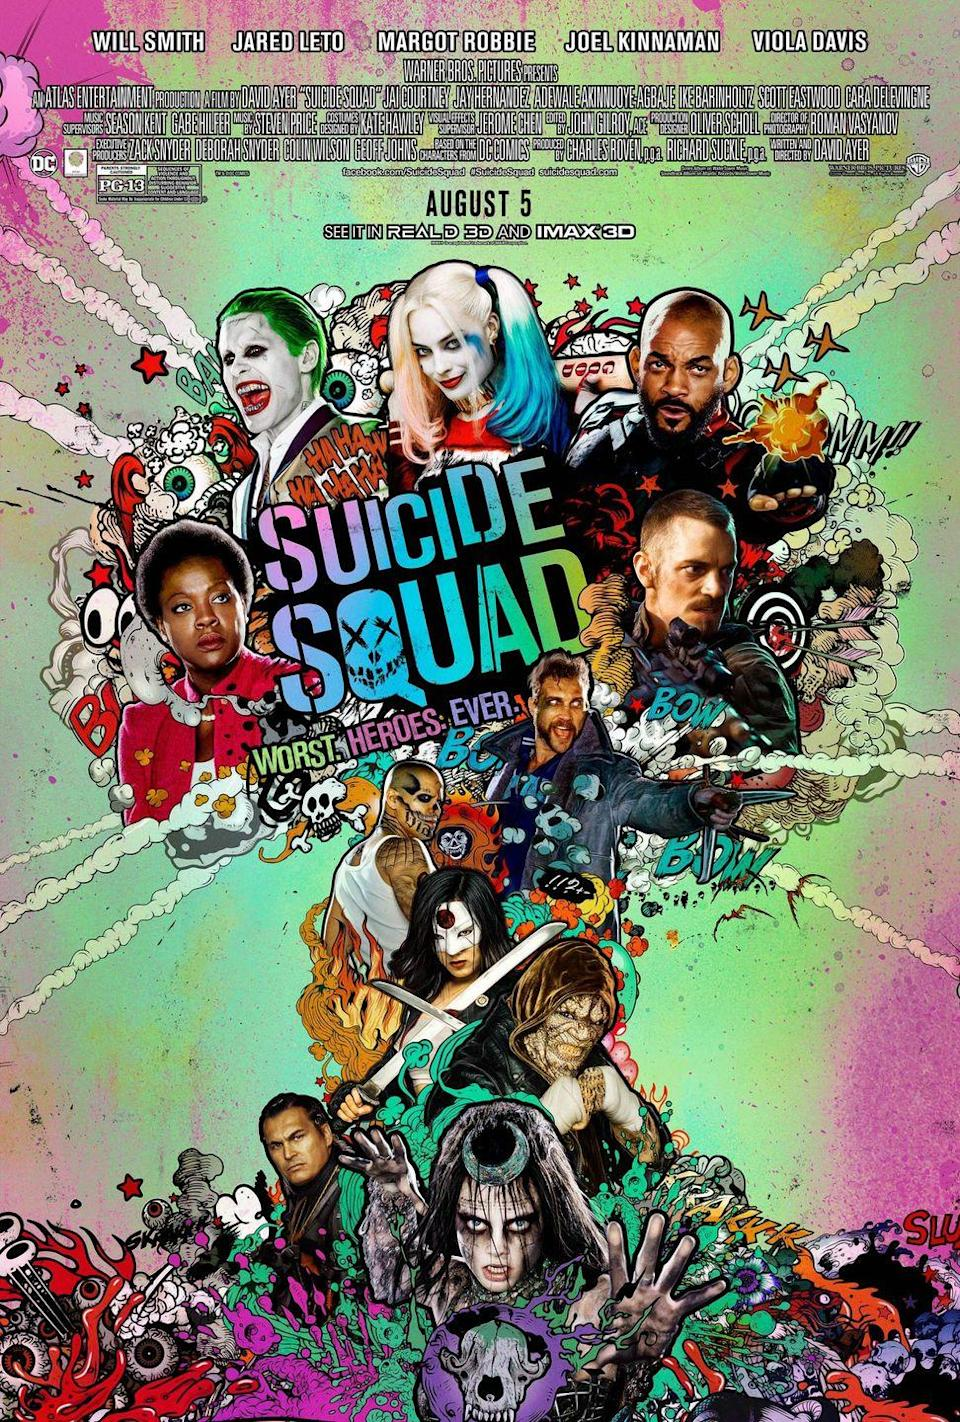 <p>Unlike <em>BvS</em>, there are occasional aspects of<em> Suicide Squad</em> that are not horrible. Margot Robbie is honestly pretty great as Harley Quinn. And you have to give director David Ayer credit for cutting out most of Method Actor Jared Leto's insufferable Joker from the theatrical version of the film. But this film's biggest sin is for creating the unbearable narrative of Method Actor Jared Leto's stupid gifts to his fellow actors. It's hard to recall the convoluted plot of this film when all I can think about is Method Actor Jared Leto harassing his poor co-stars with dead rats wrapped in used condoms, or whatever the hell he did on set. I feel bad for everyone involved in this film.</p>